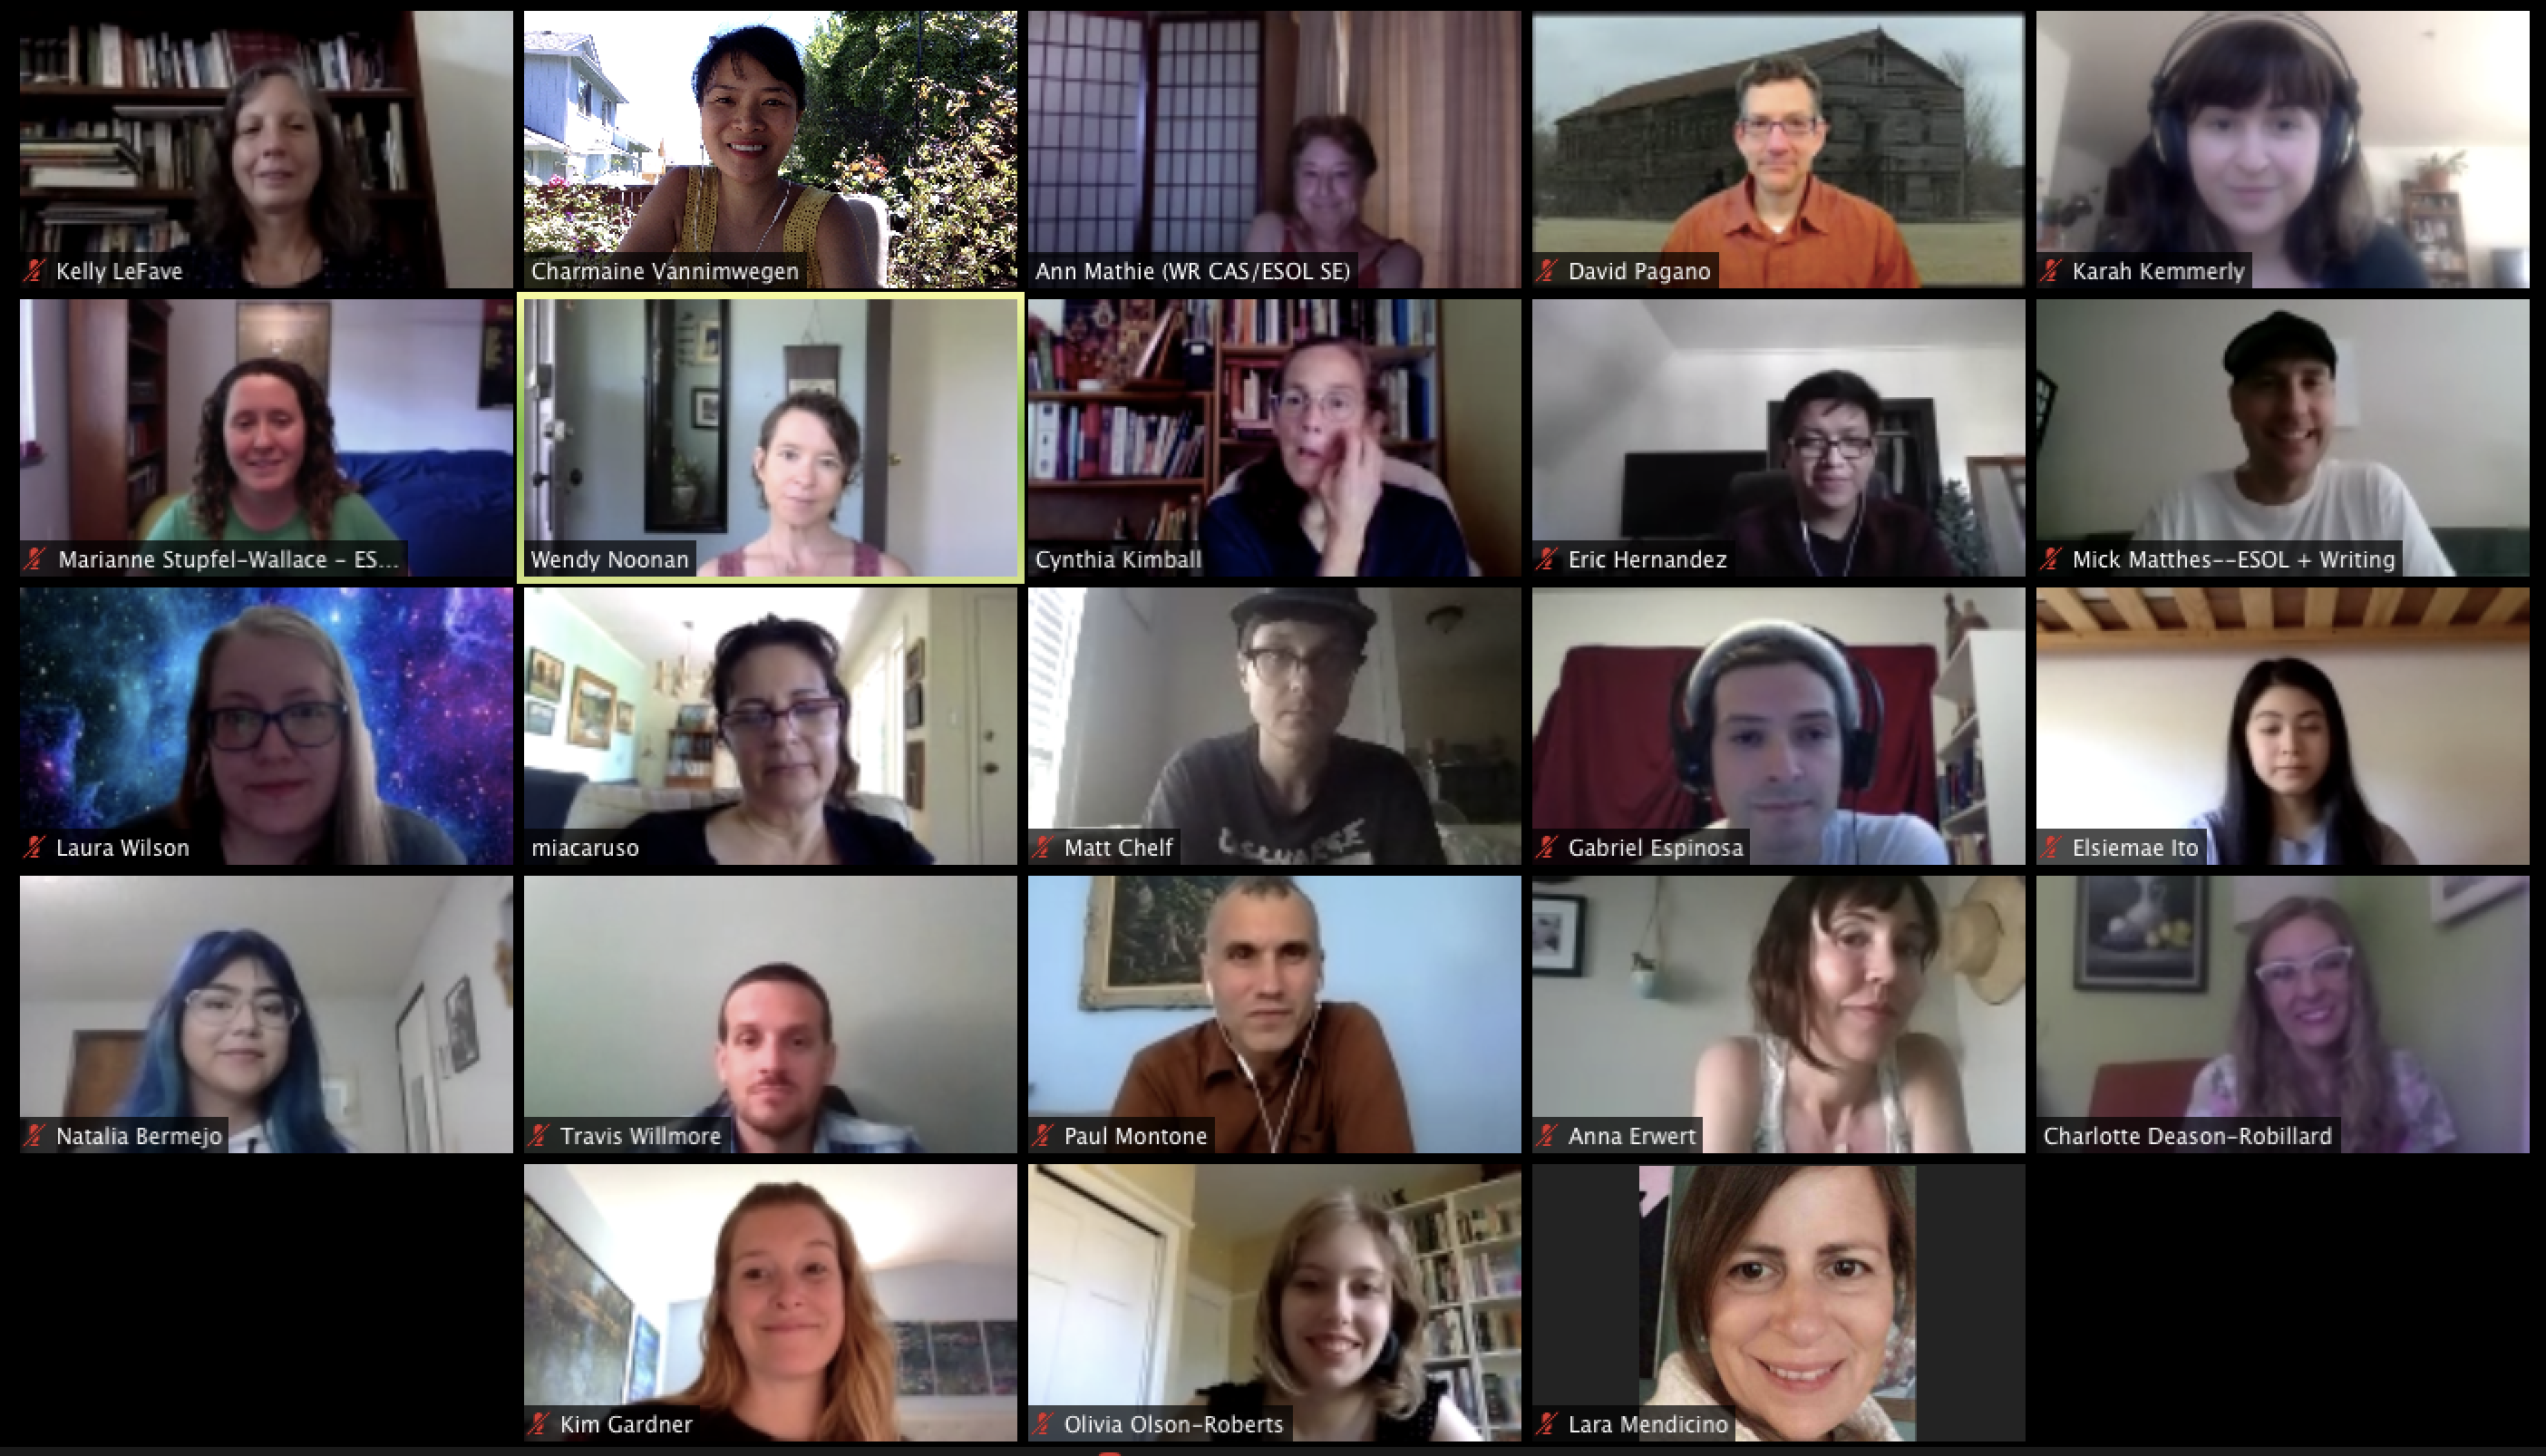 Image of tutors from the online tutoring center. Also includes hyperlink to video of instructions for booking a Google Hangouts appointment